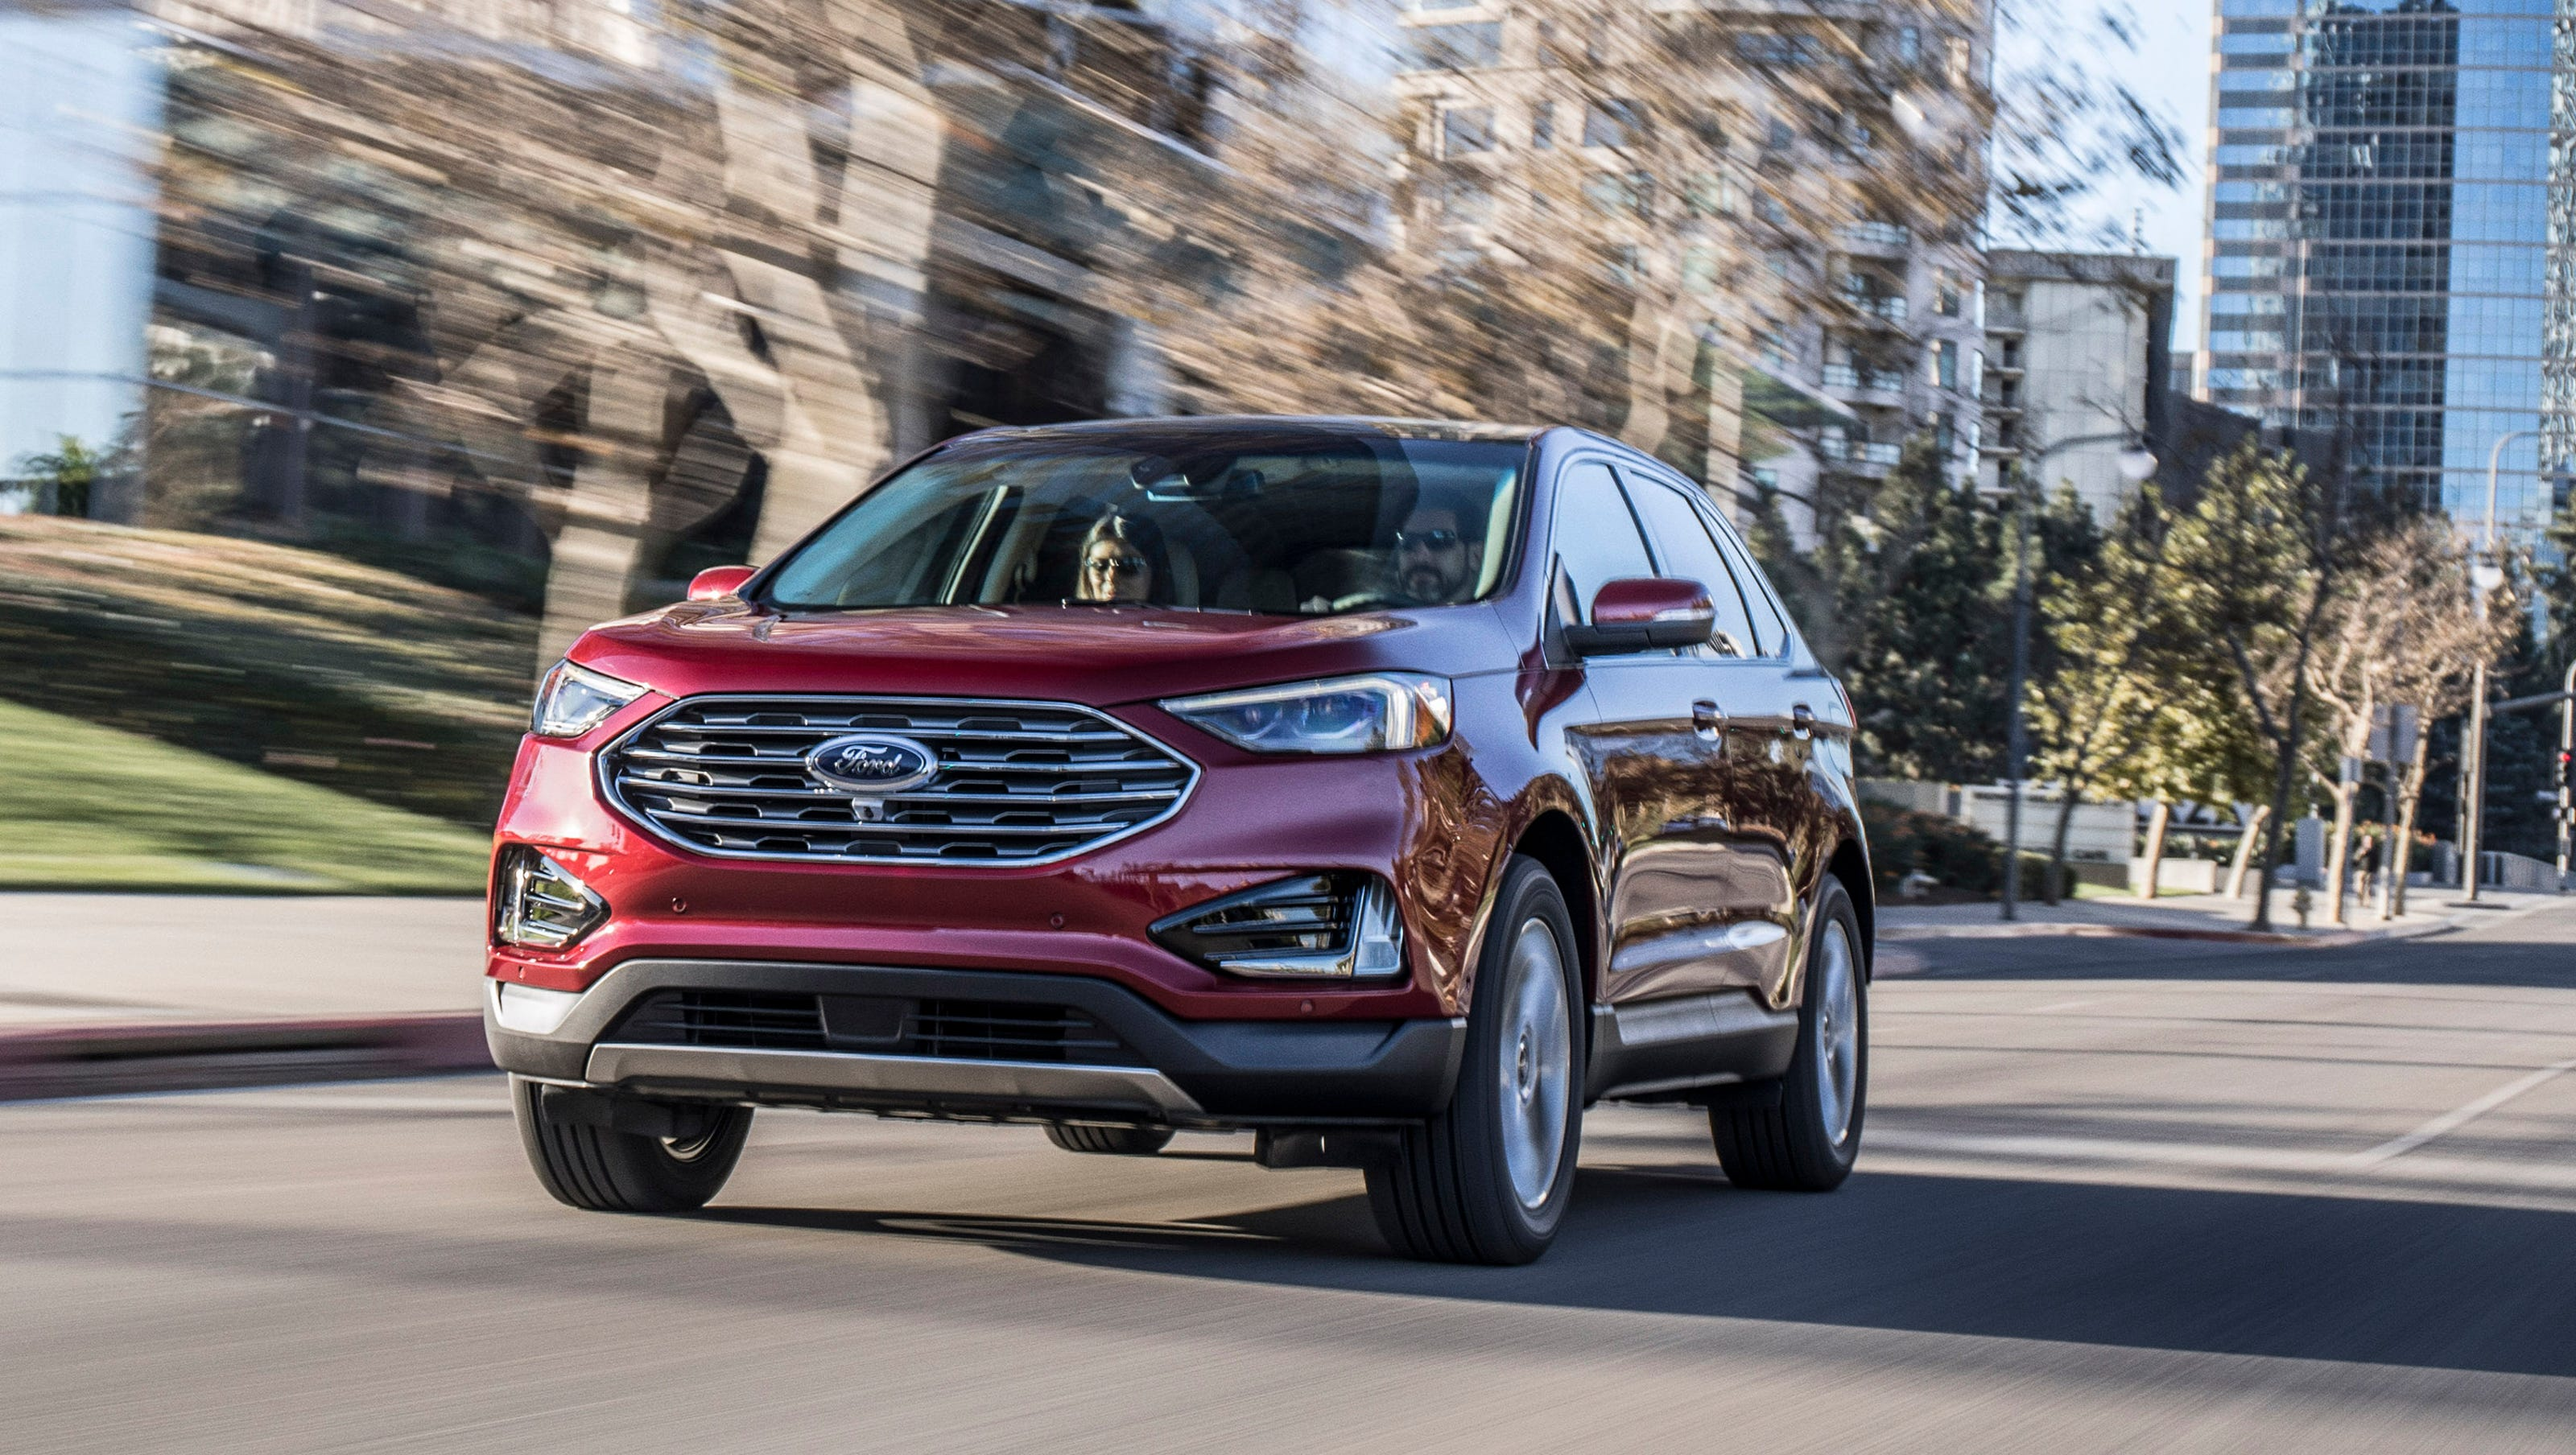 Detroit Auto Show  Ford Edge Suv Gets New Look Technology